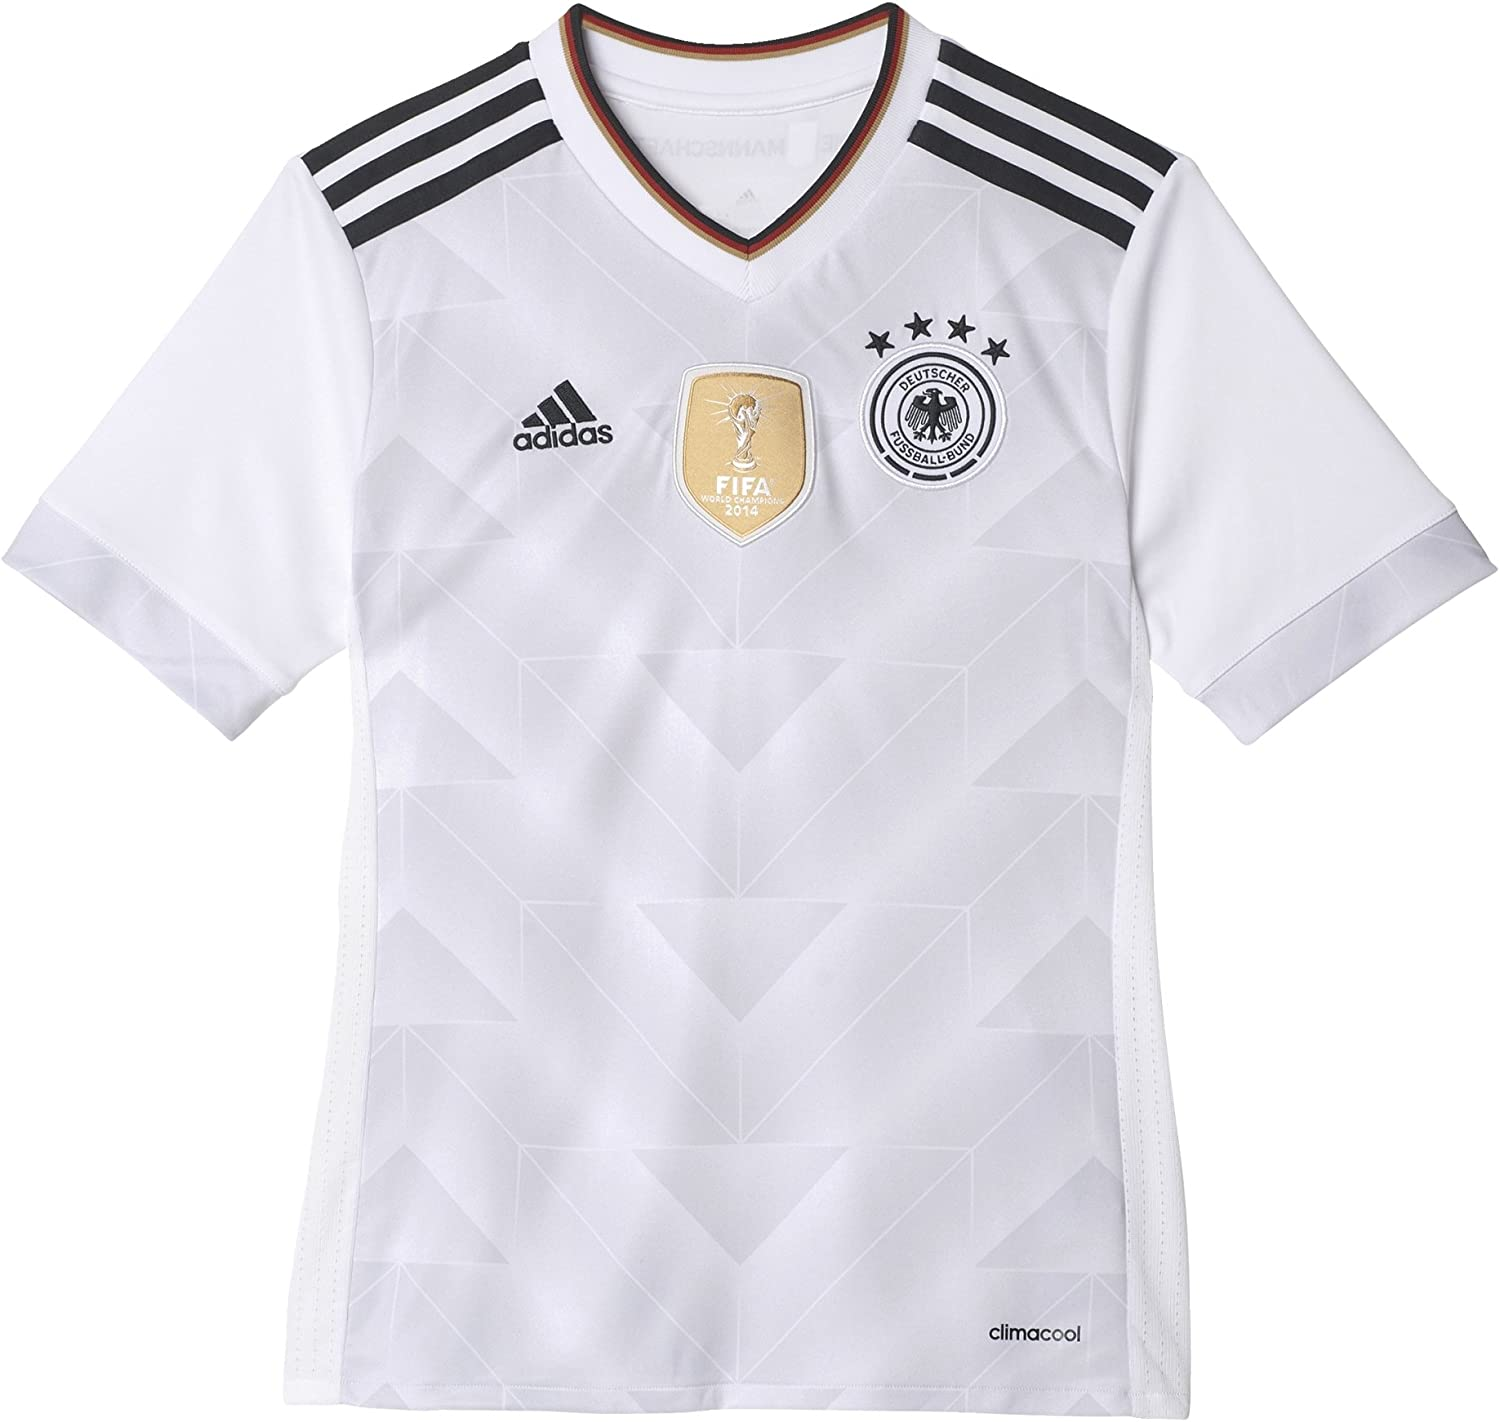 adidas Youth Germany 17/18 Home White/Black Jersey